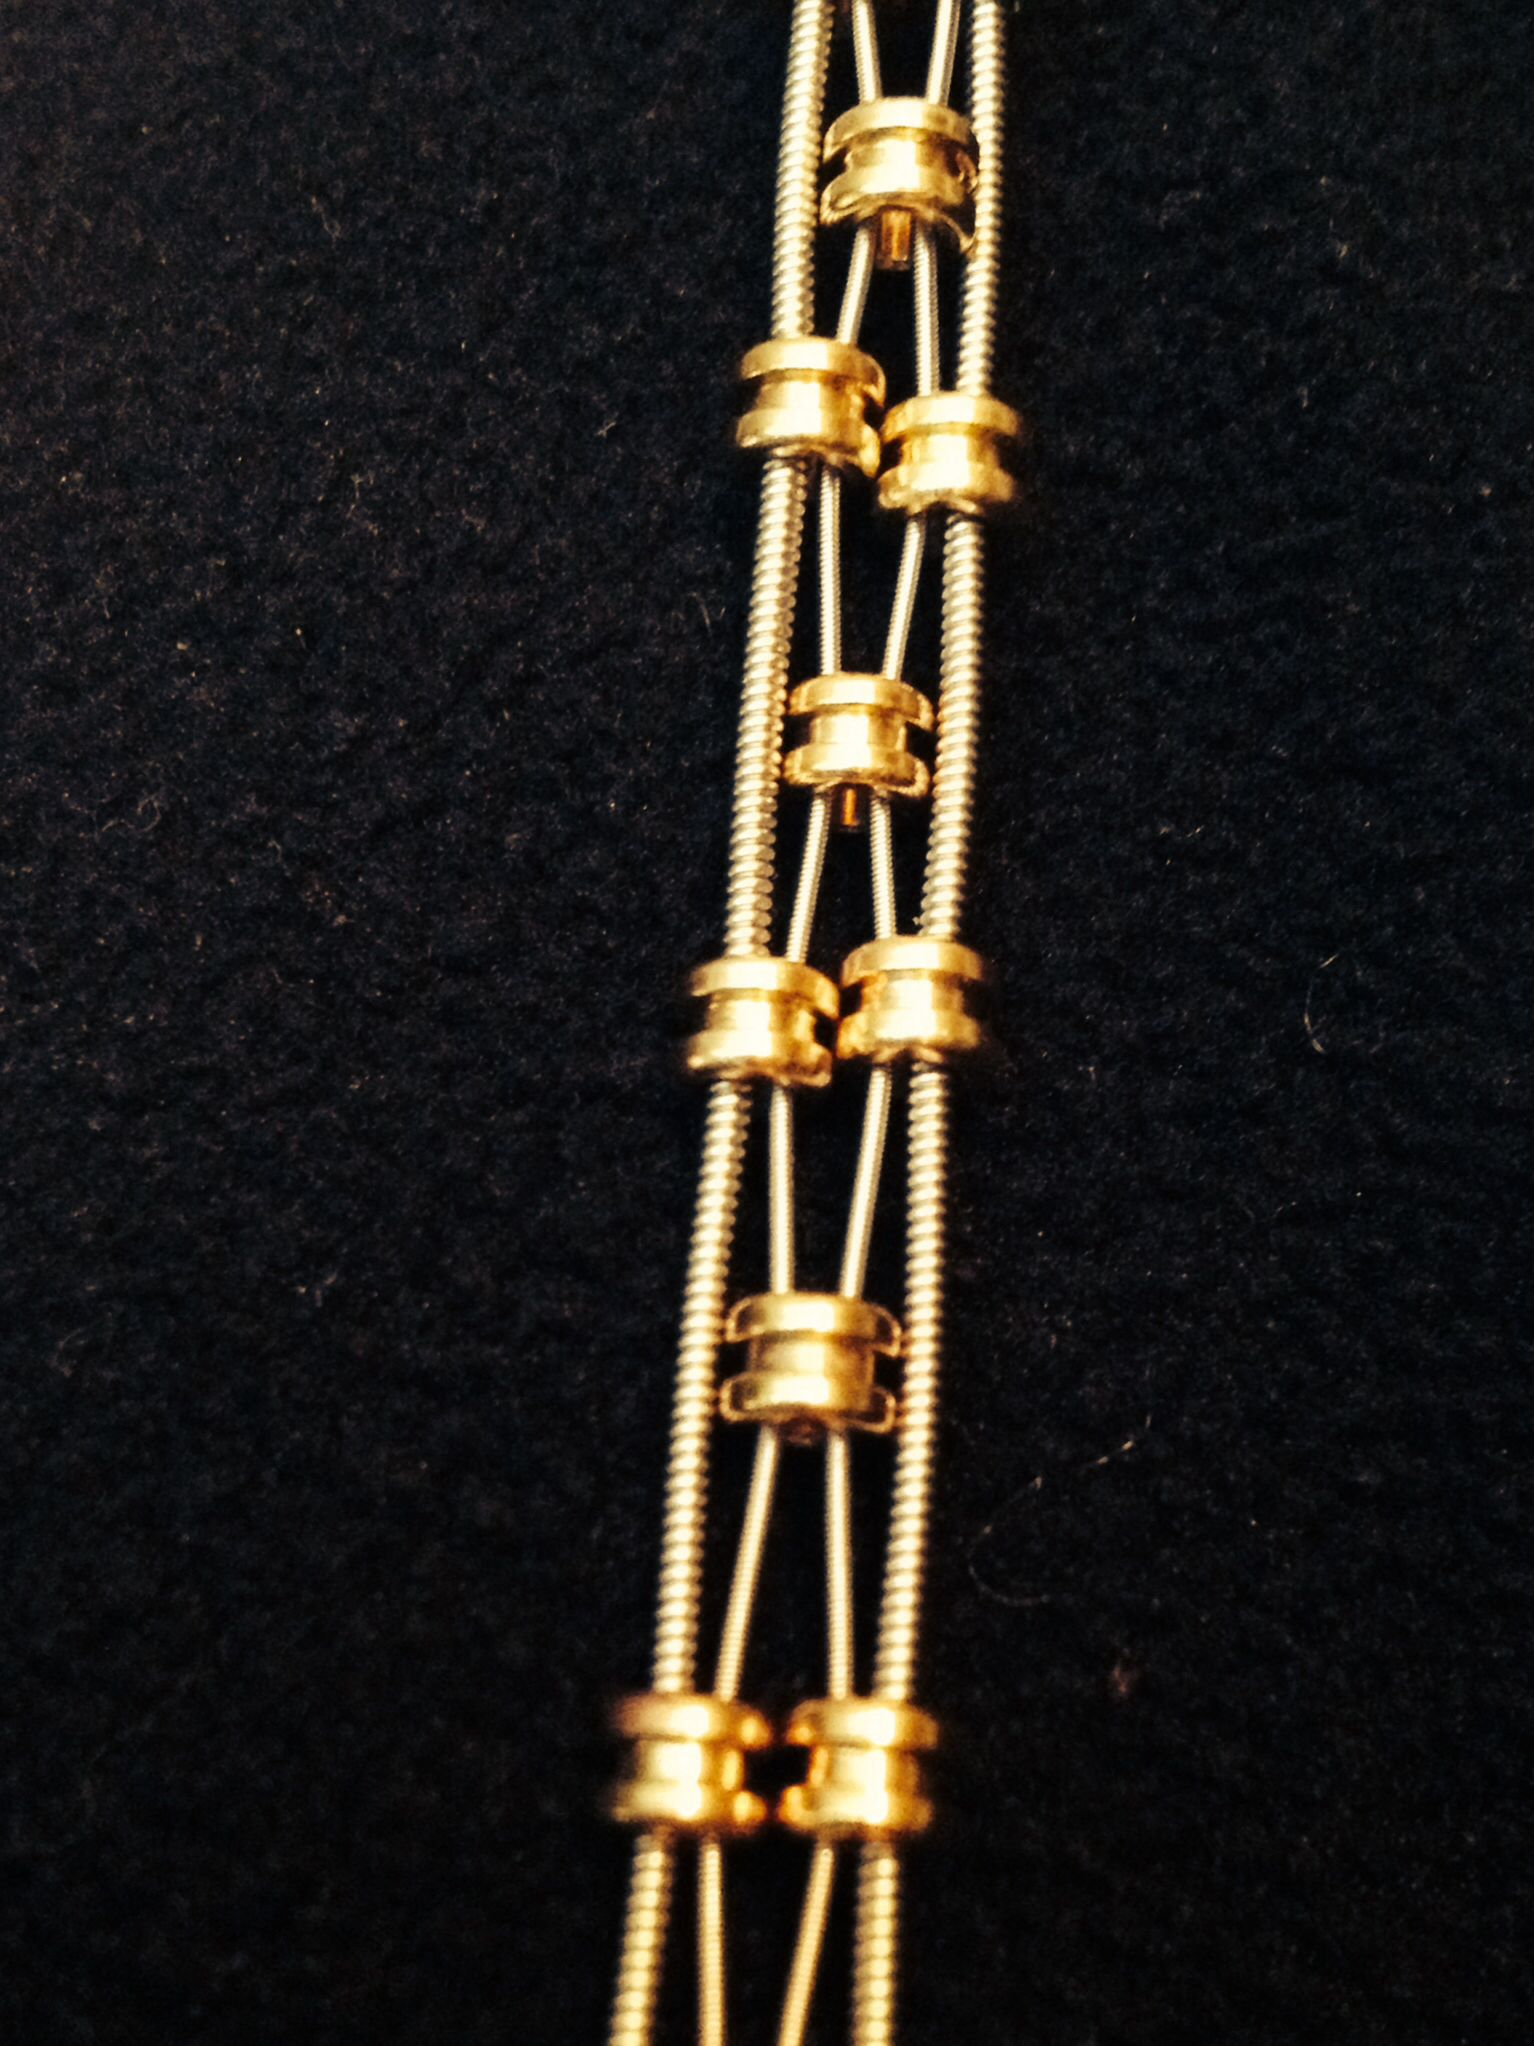 Recycled guitar string jewelry - Guitar String Bracelet With Gold Ball Ends